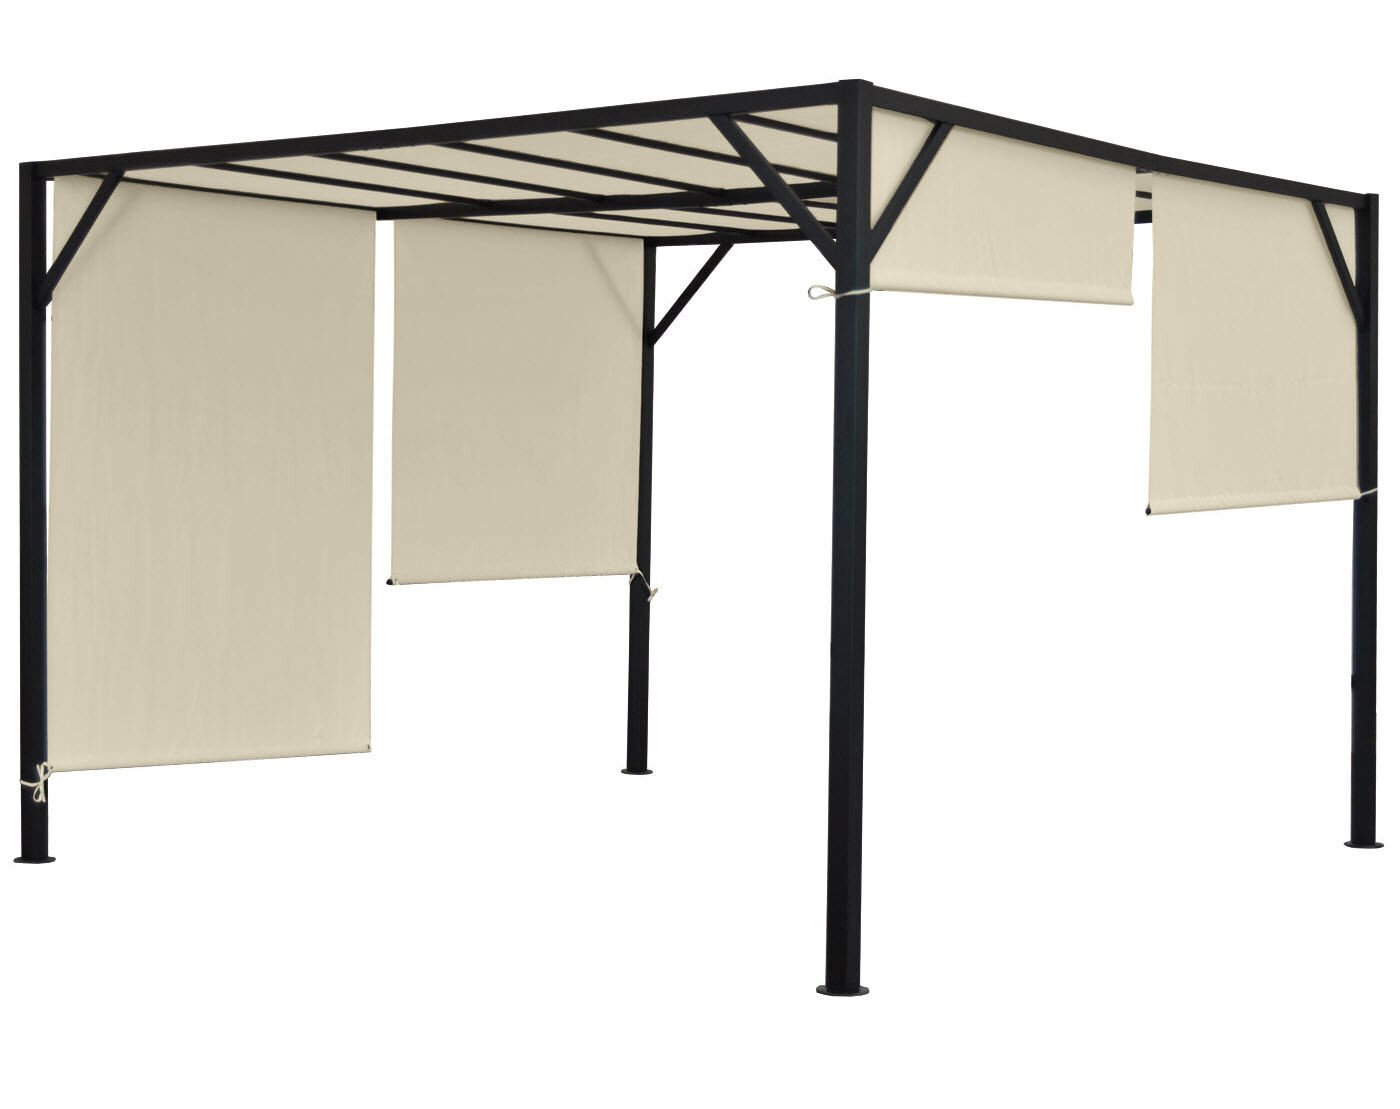 3x3 4x3 4x4 m pavillon garten terrasse sonnenschutz pergola sonnensegel garten c eur 269 00. Black Bedroom Furniture Sets. Home Design Ideas